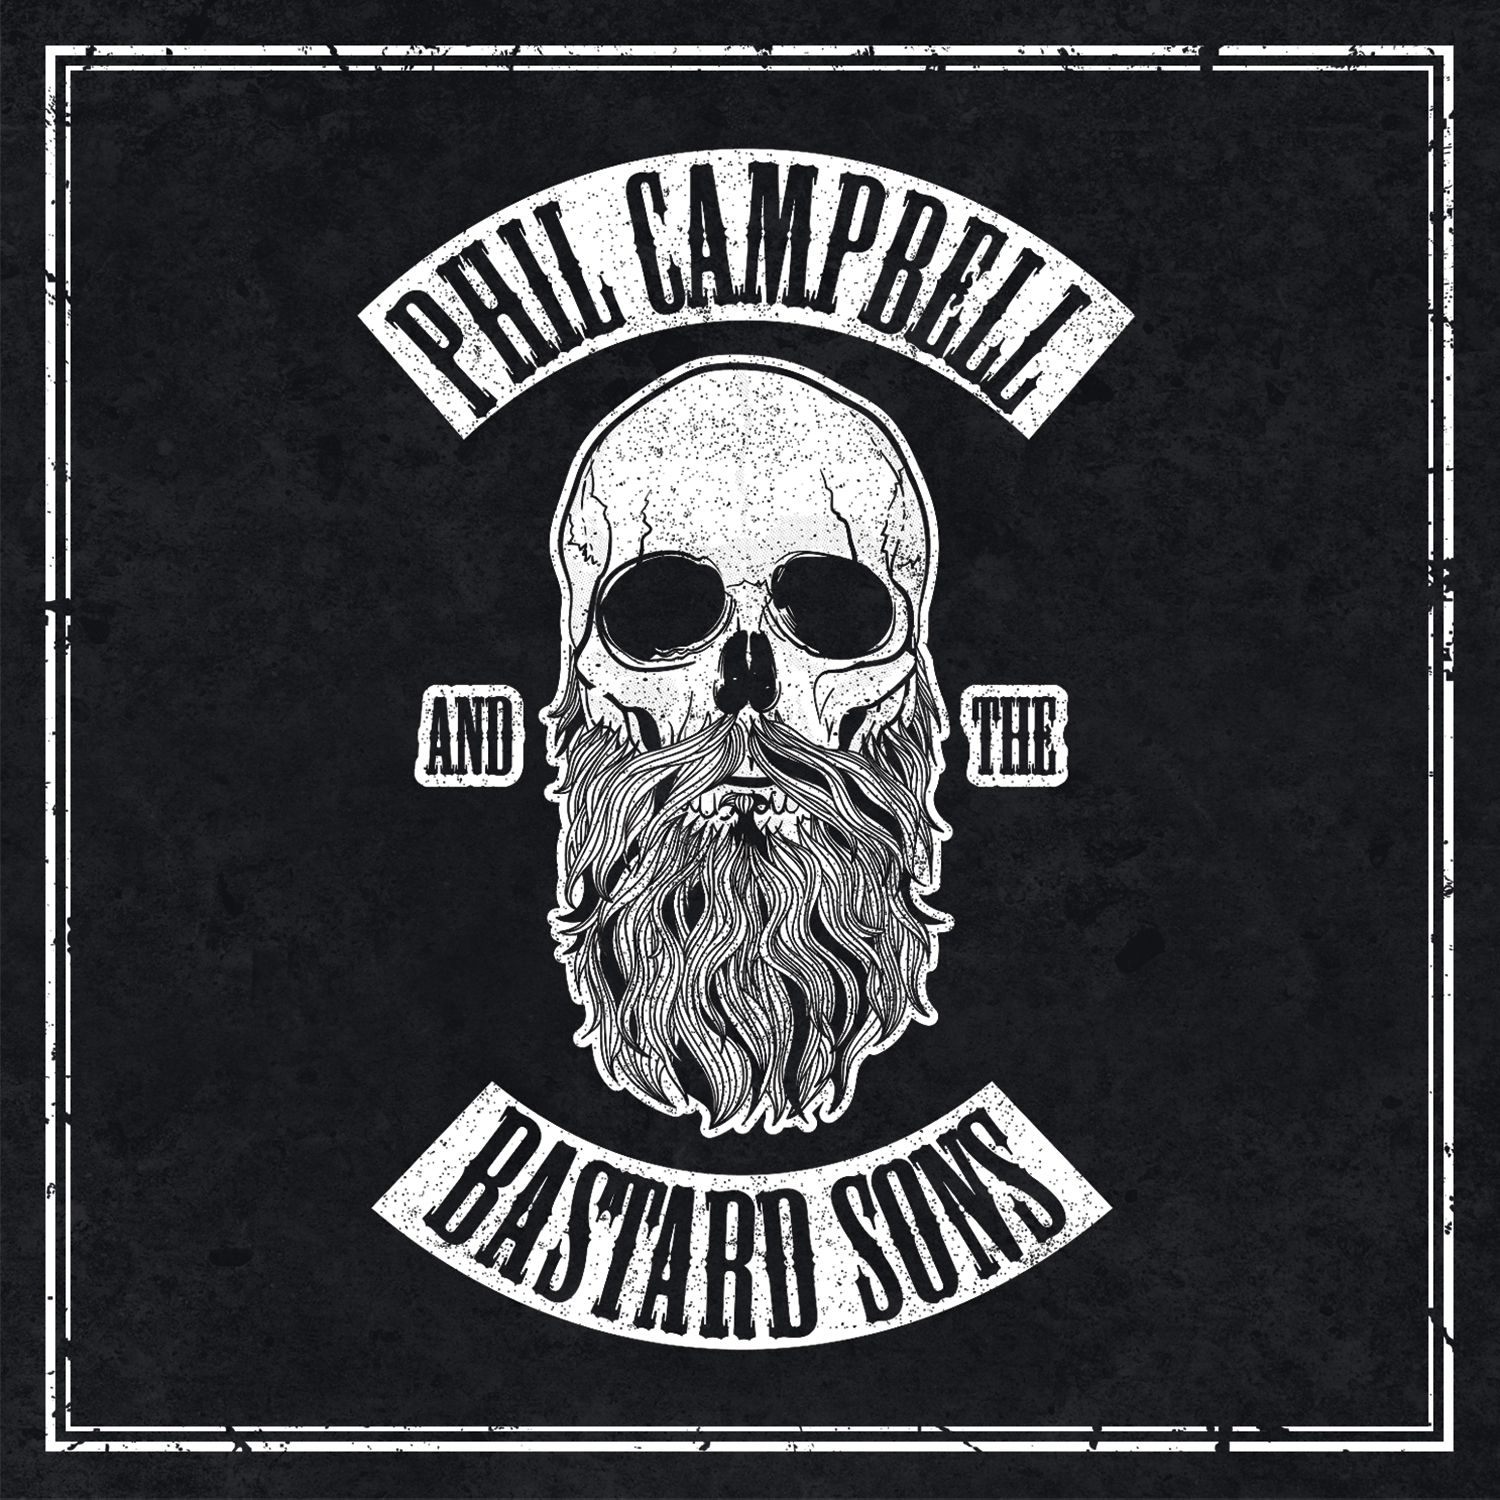 phil_campbell_and_the_bastard_sons_cover_300dpi